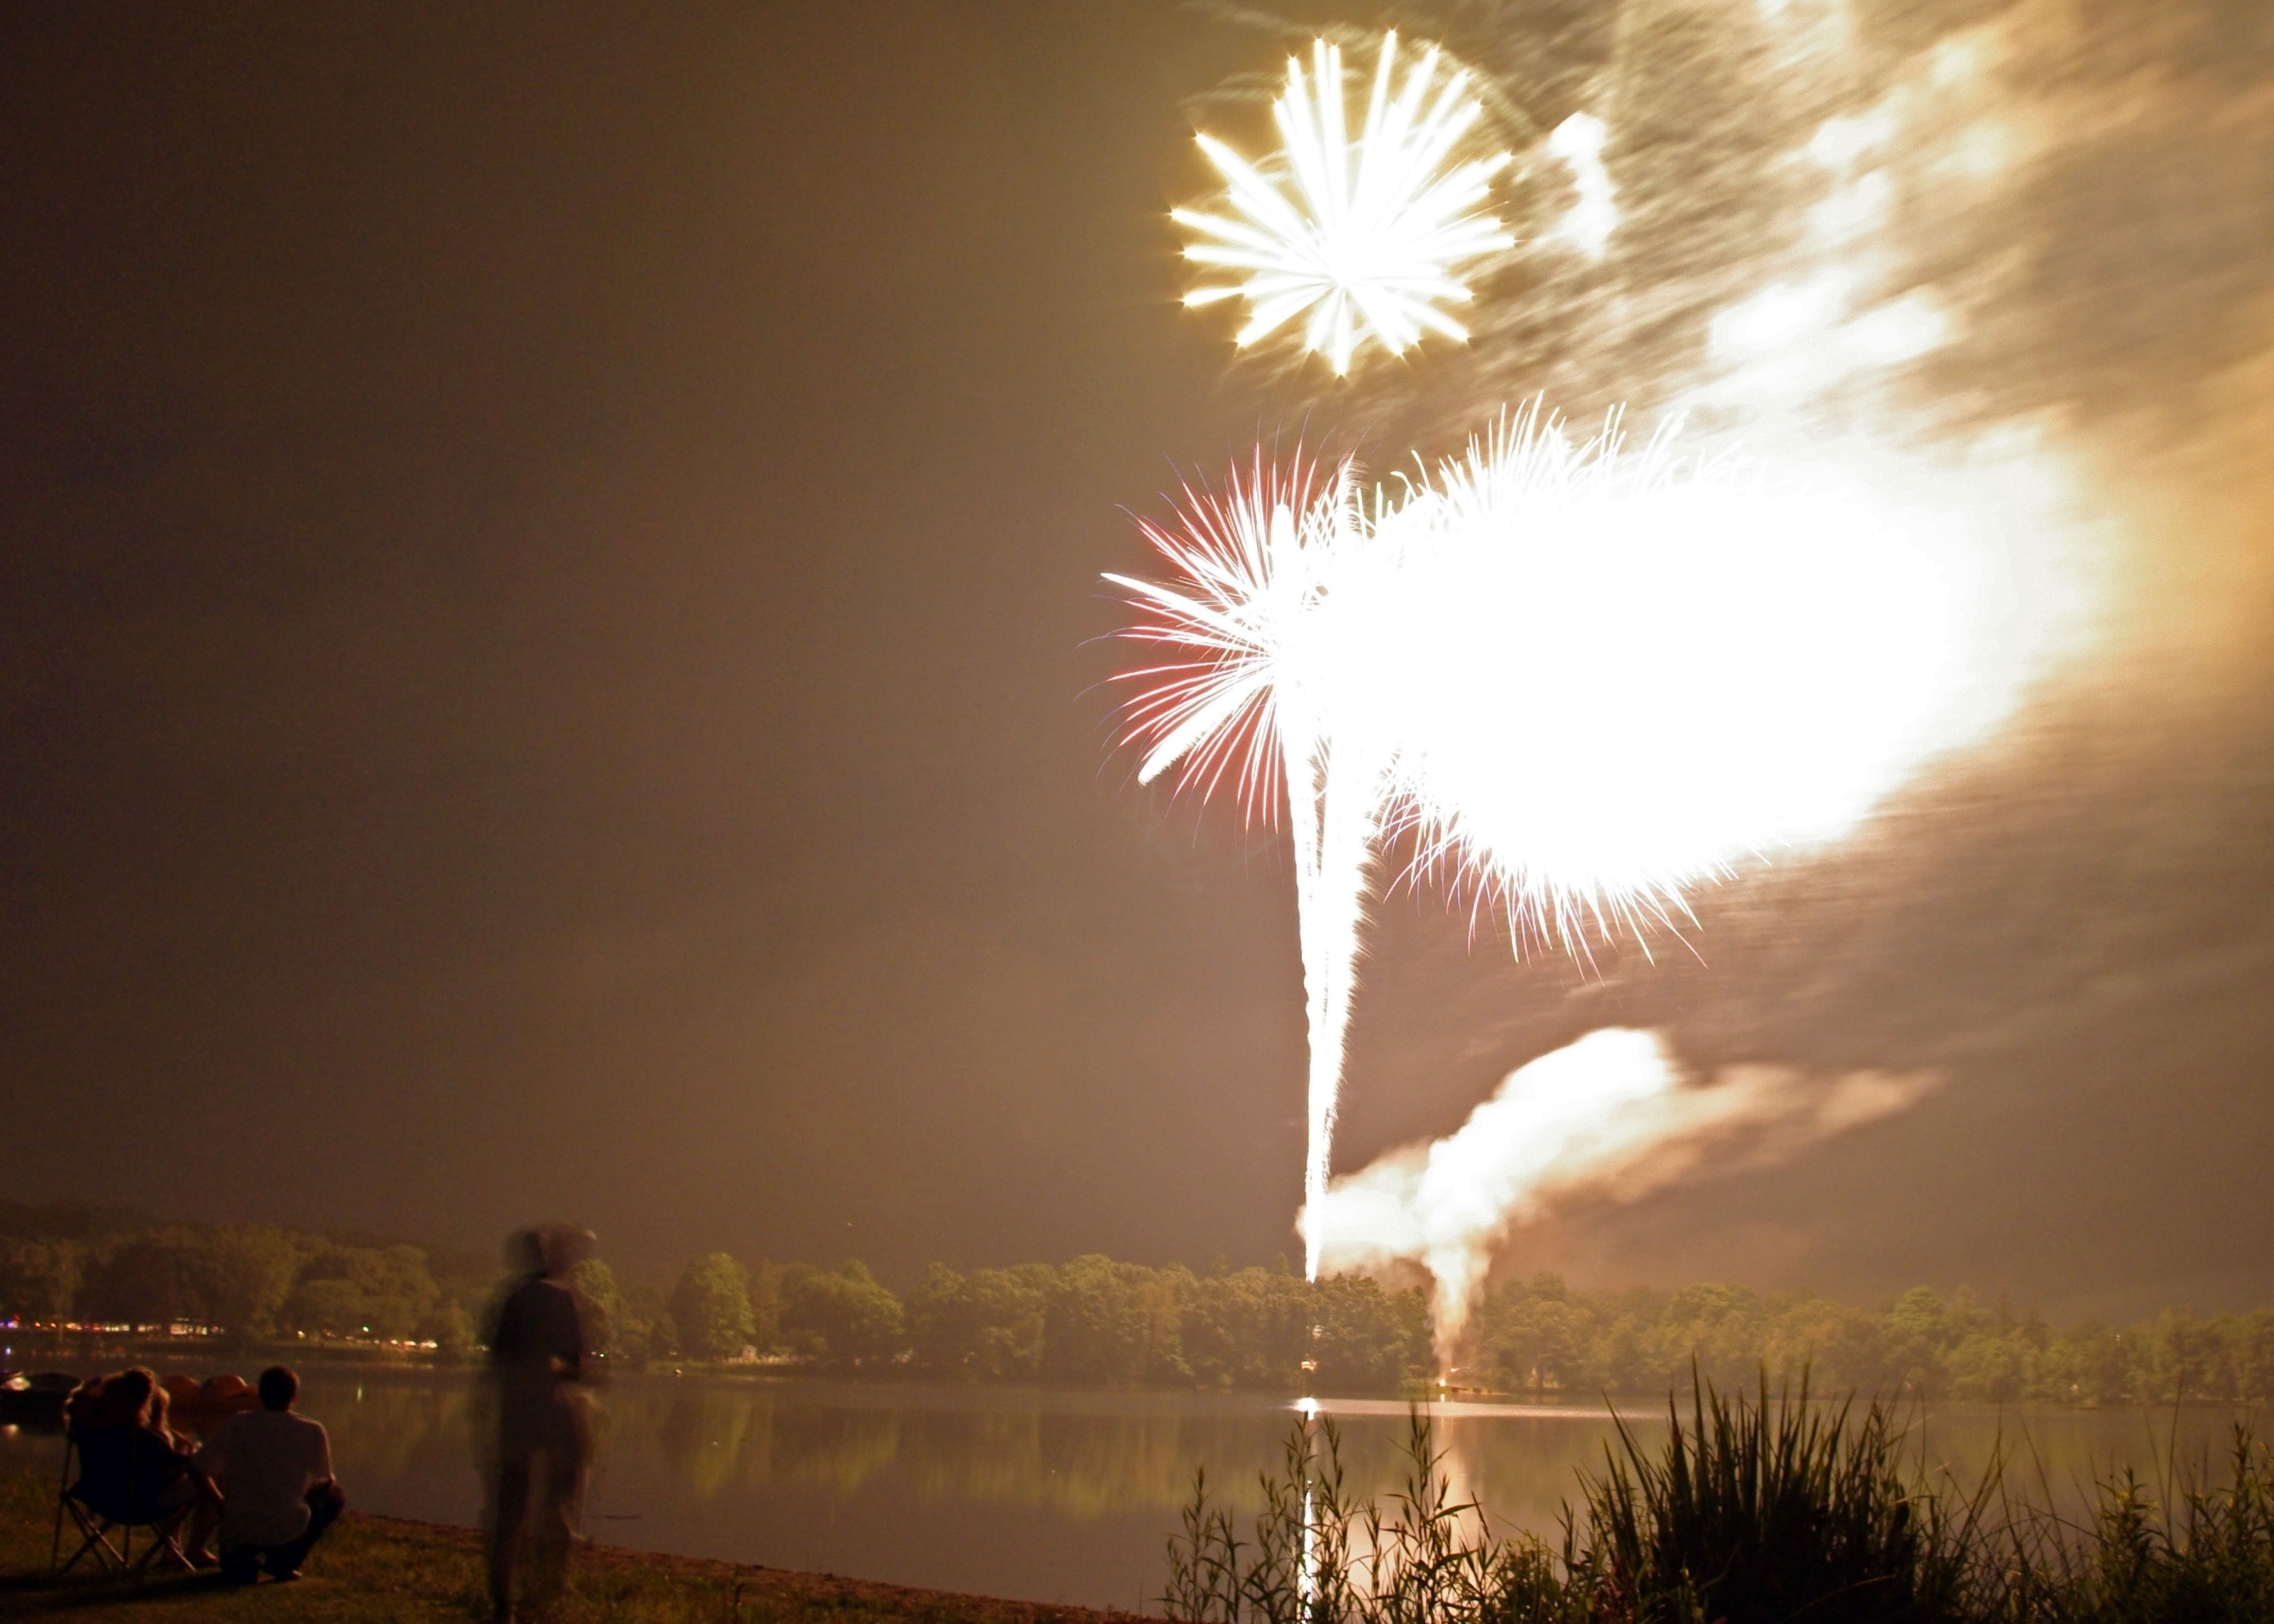 Part of the Finale at the July 4th fireworks display over Lake Quannapowitt, Wakefield, Massachusetts